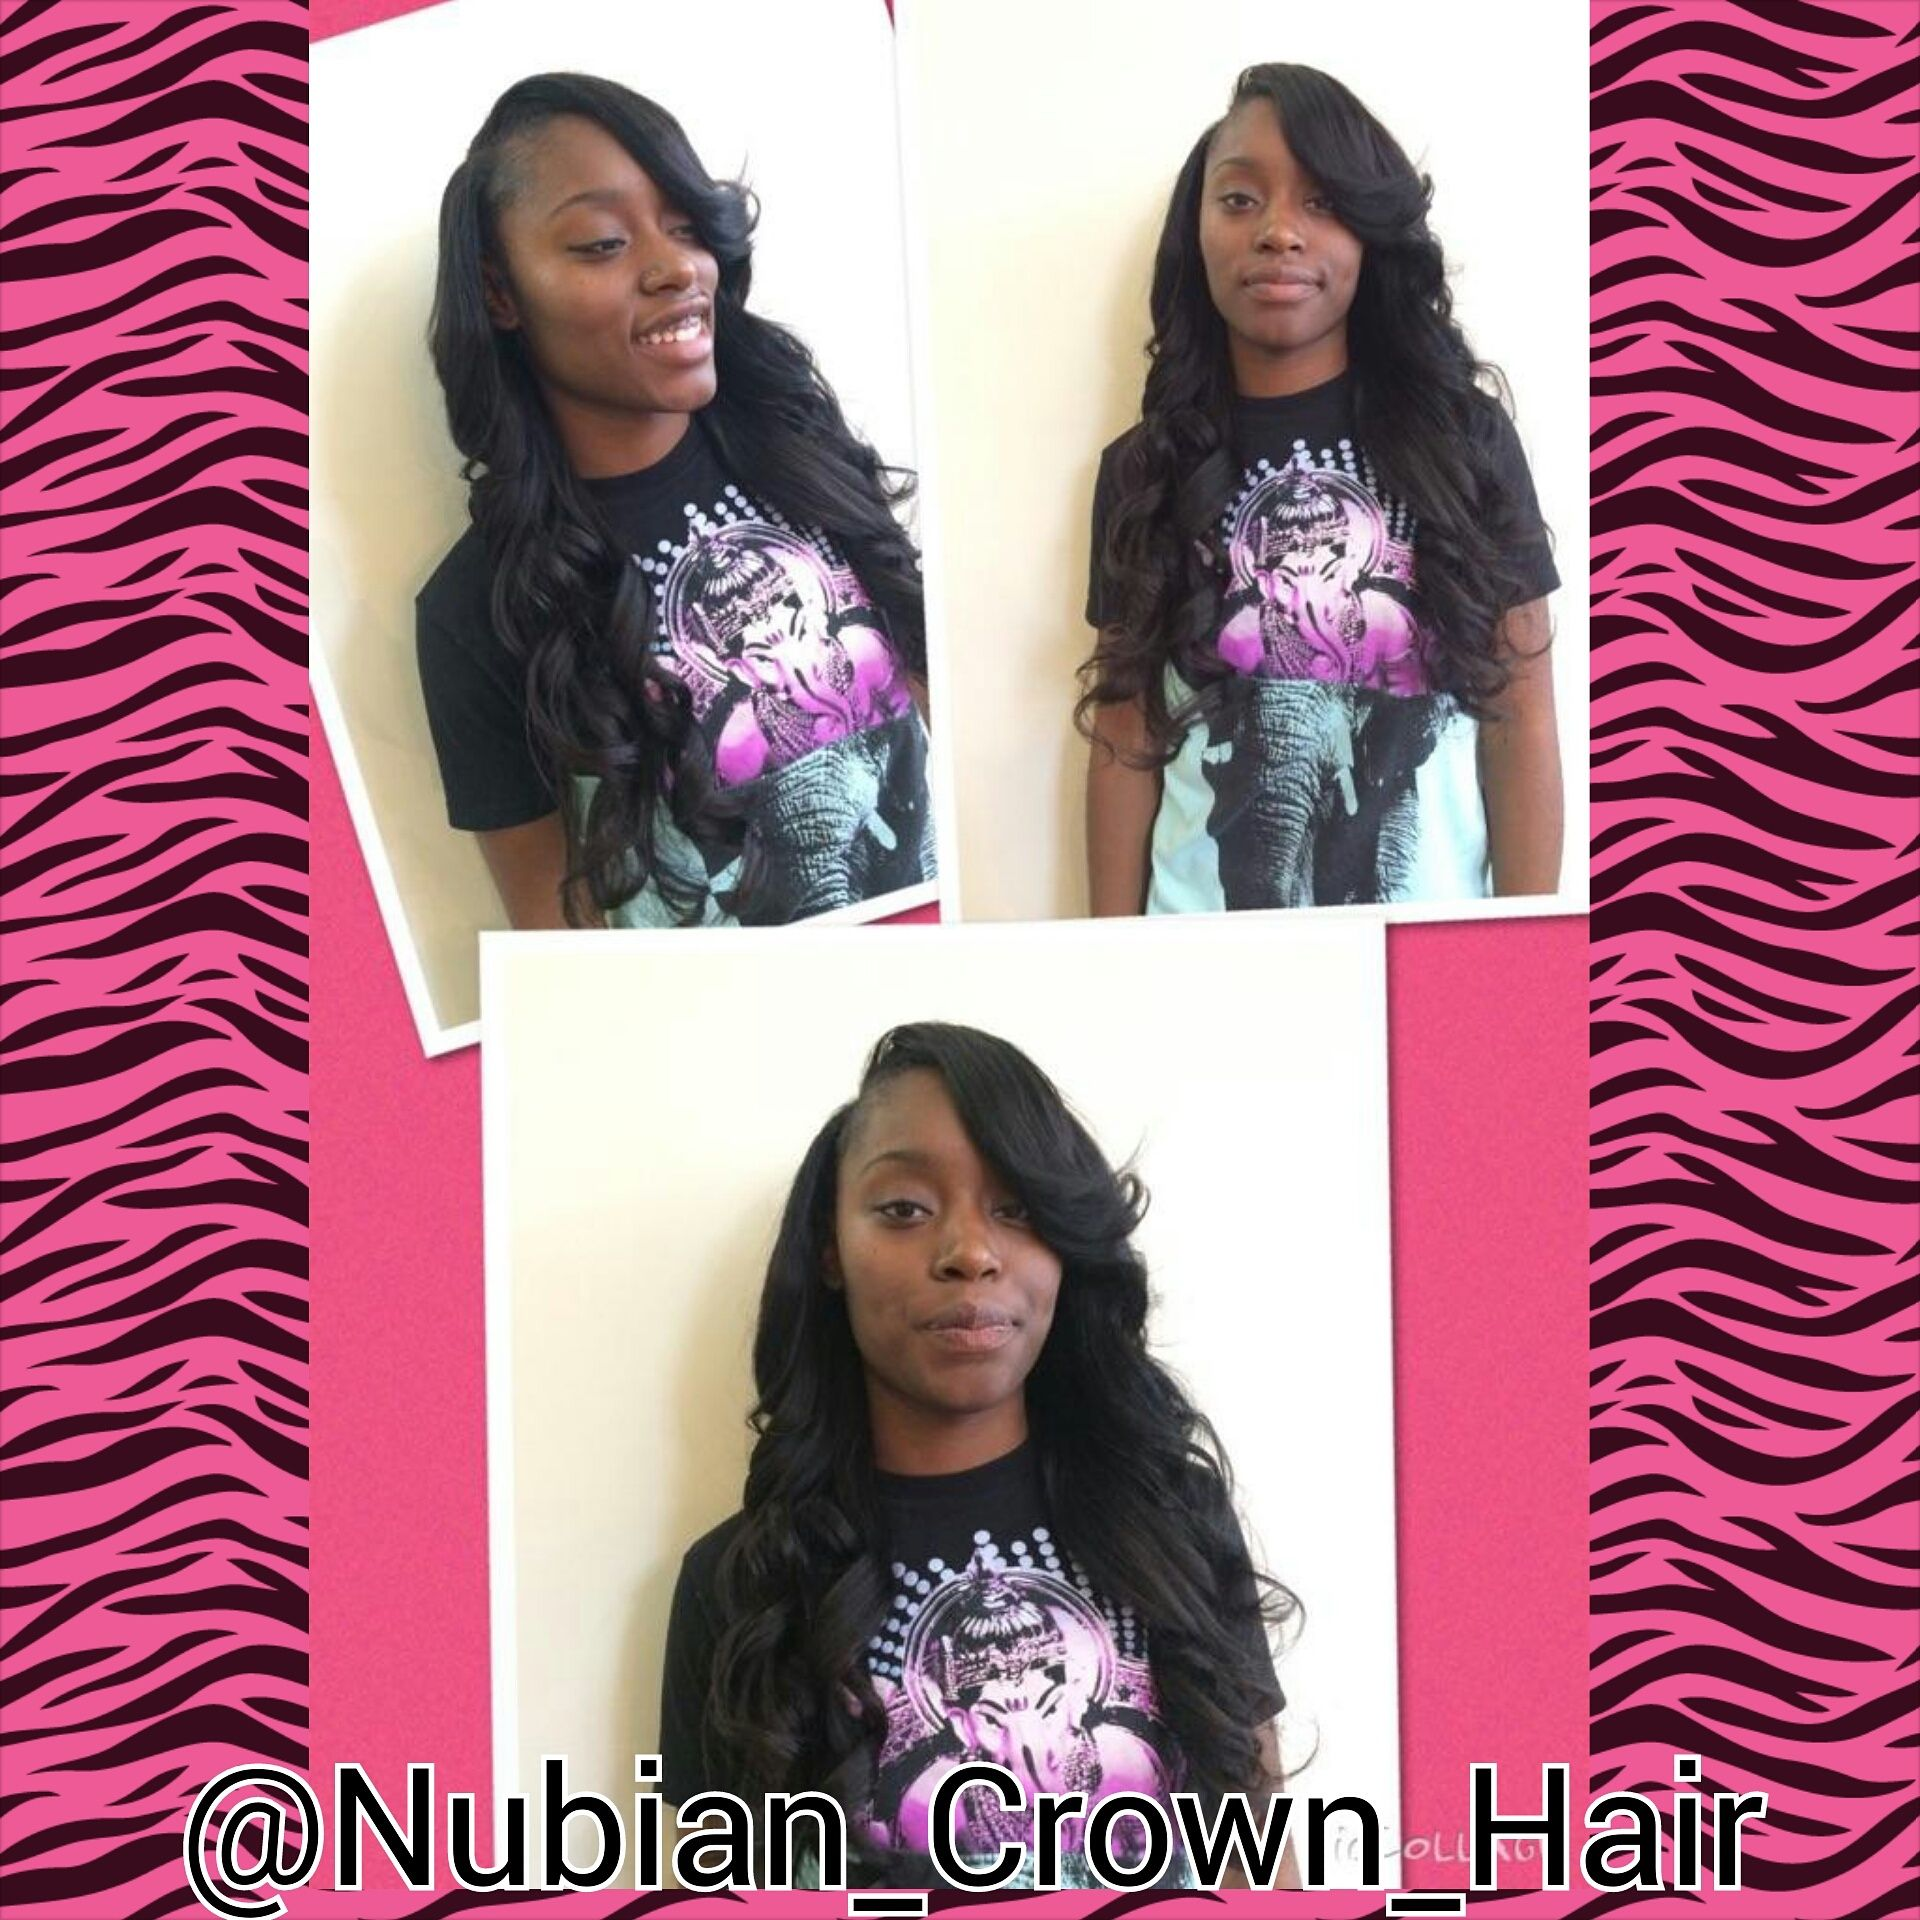 Nubian Crown Hair Royale Celebrity Brayanna Click On The Link To